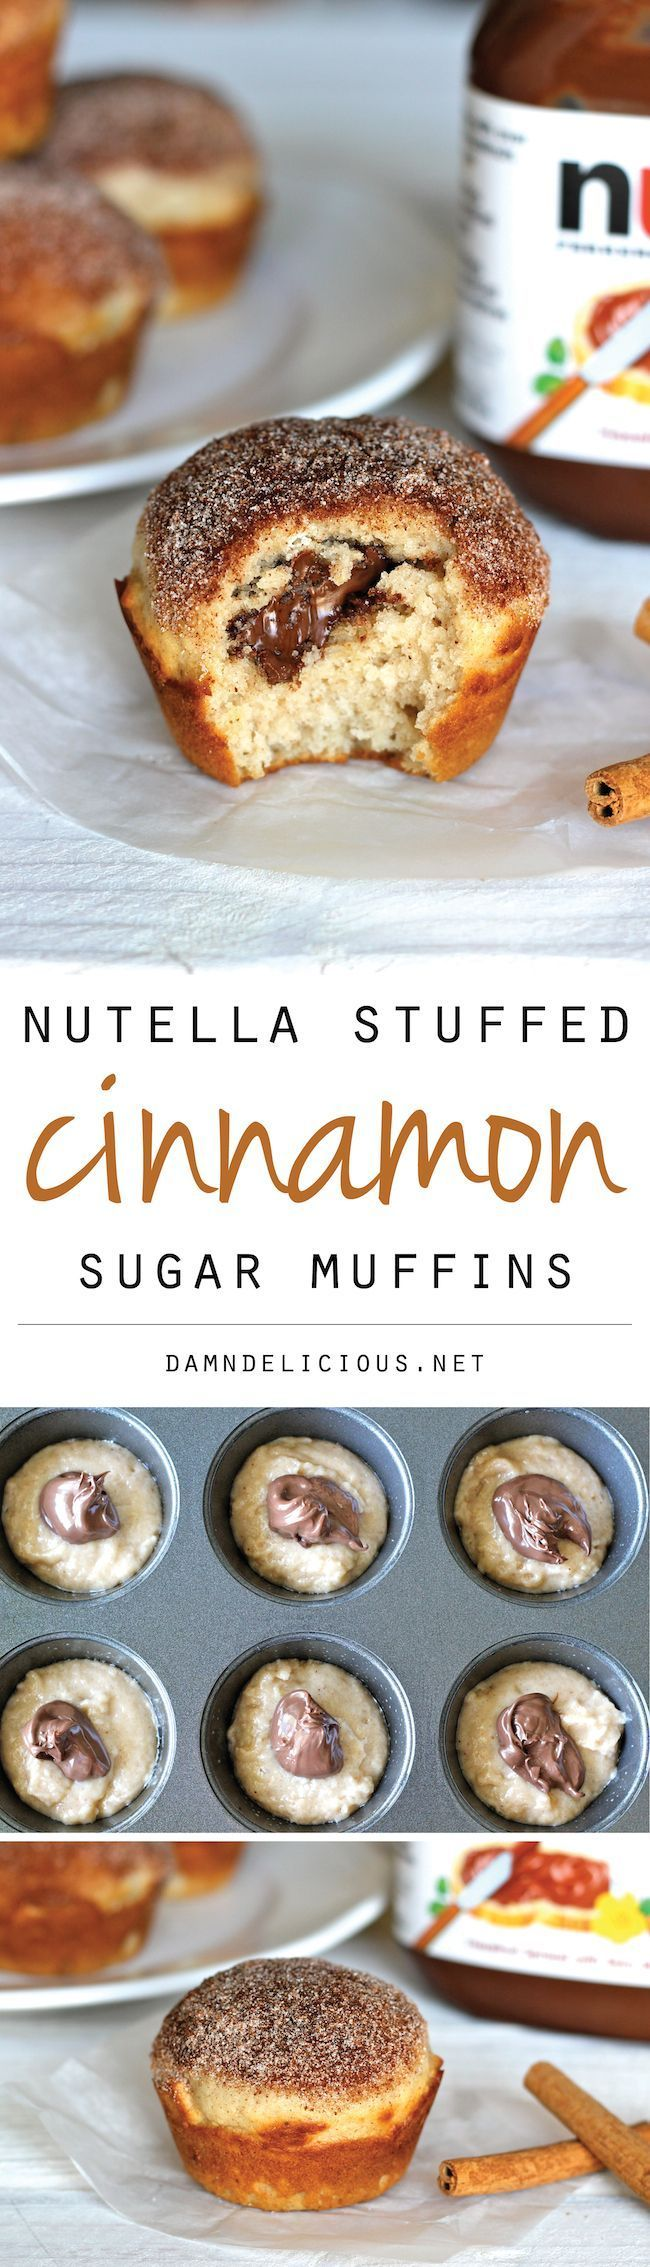 Stuffed Cinnamon Sugar Muffins Nutella Stuffed Cinnamon Sugar Muffins - Cinnamon sugar crusted muffin tops with a hidden Nutella filling that everyone will love!Nutella Stuffed Cinnamon Sugar Muffins - Cinnamon sugar crusted muffin tops with a hidden Nutella filling that everyone will love!